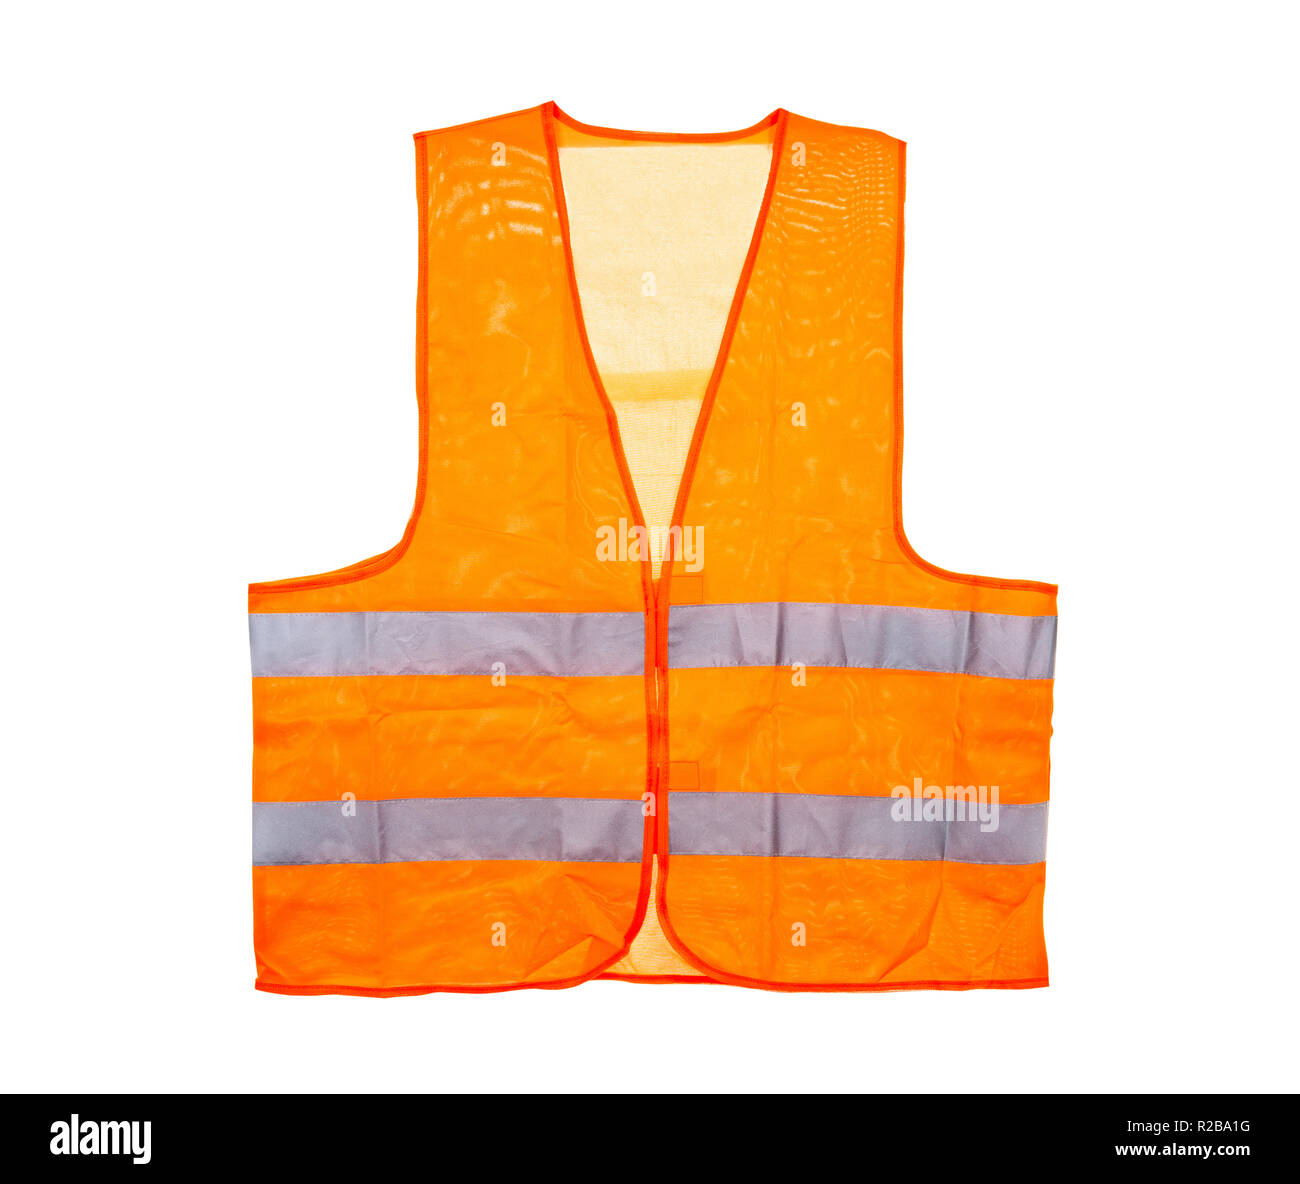 Orange safety vest, isolated on a white background with a clipping path. - Stock Image